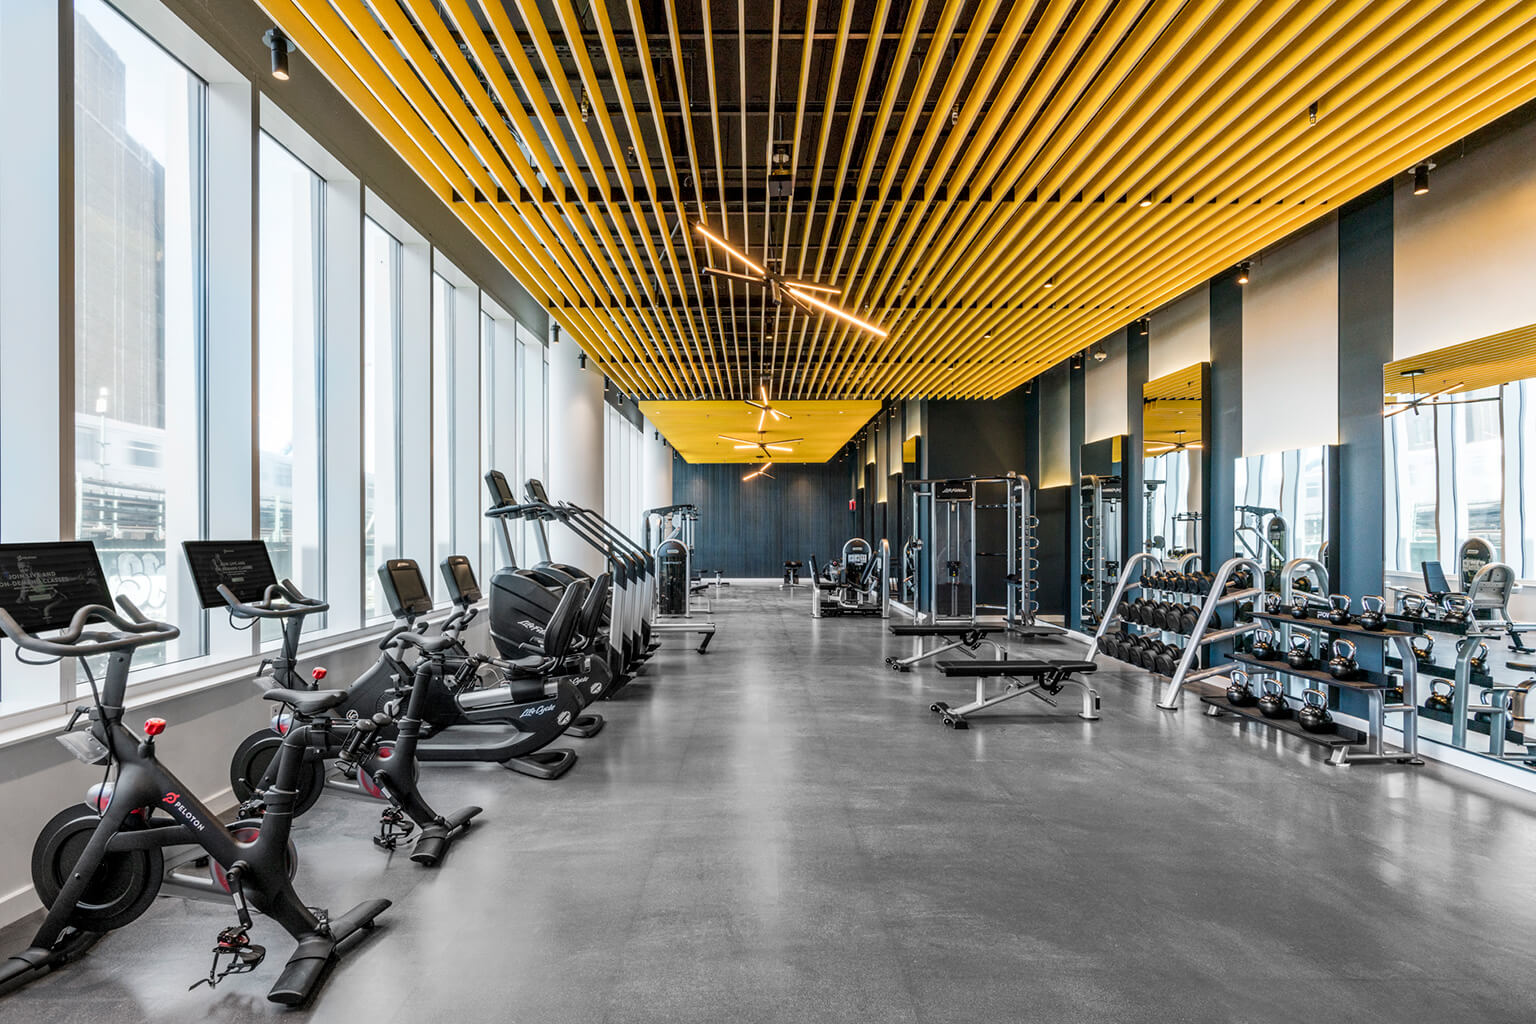 Fitness center with Peloton bikes, Stairmaster machines, kettlebells, and dumbbells